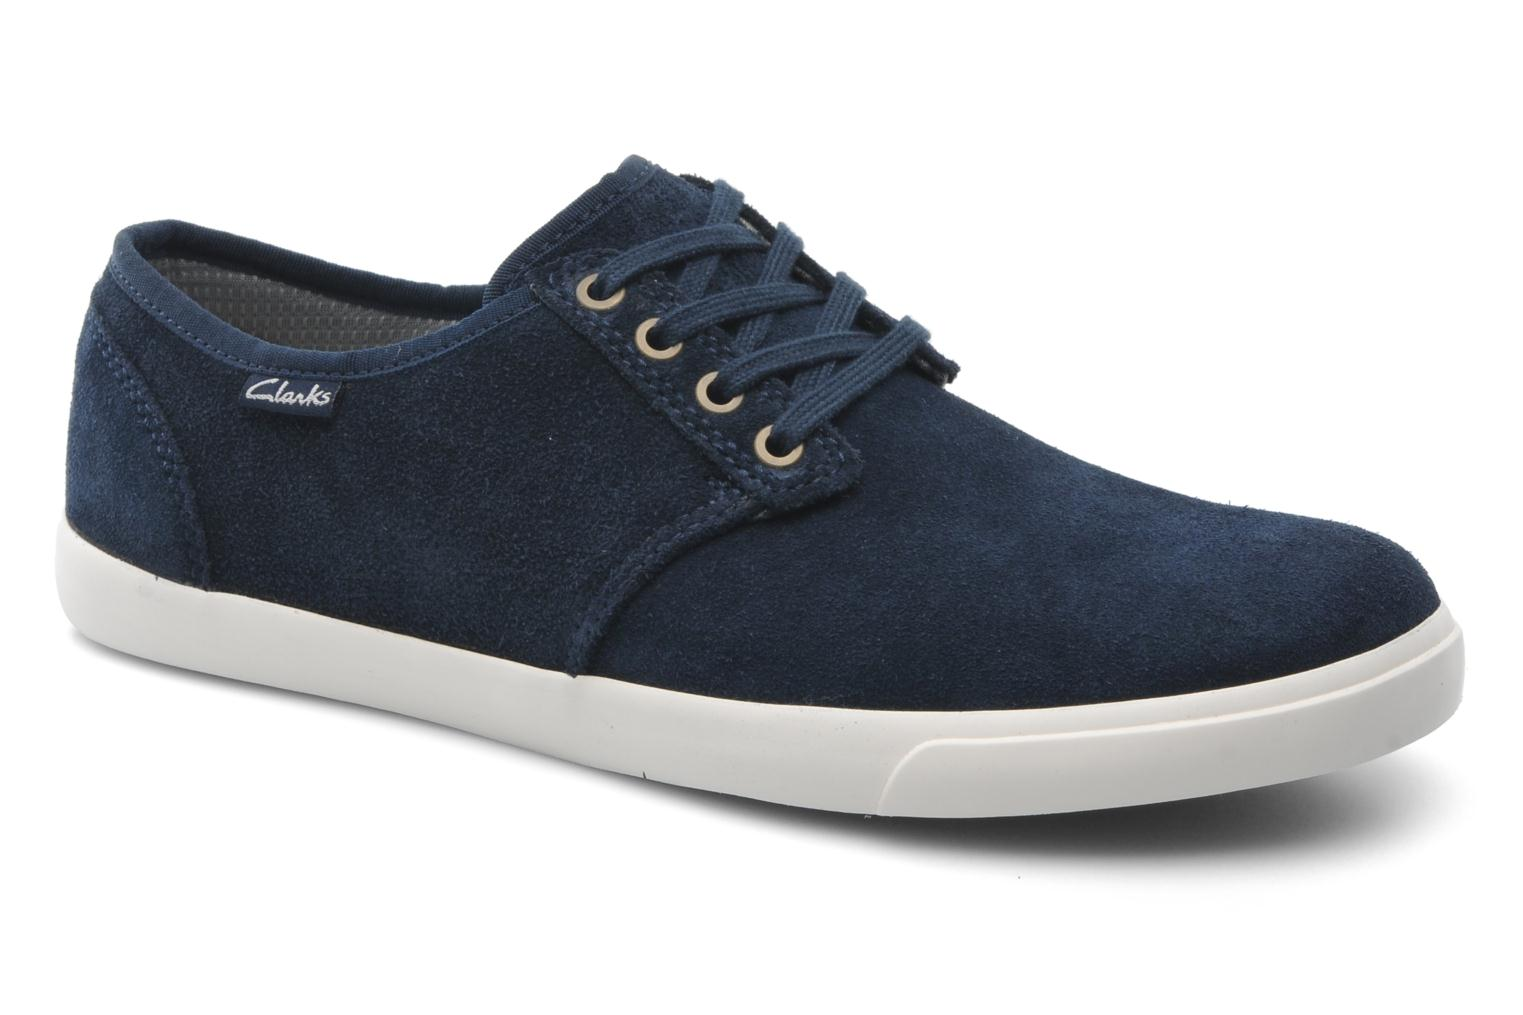 Chaussures Clarks Torbay bleues Casual homme vUMjZ